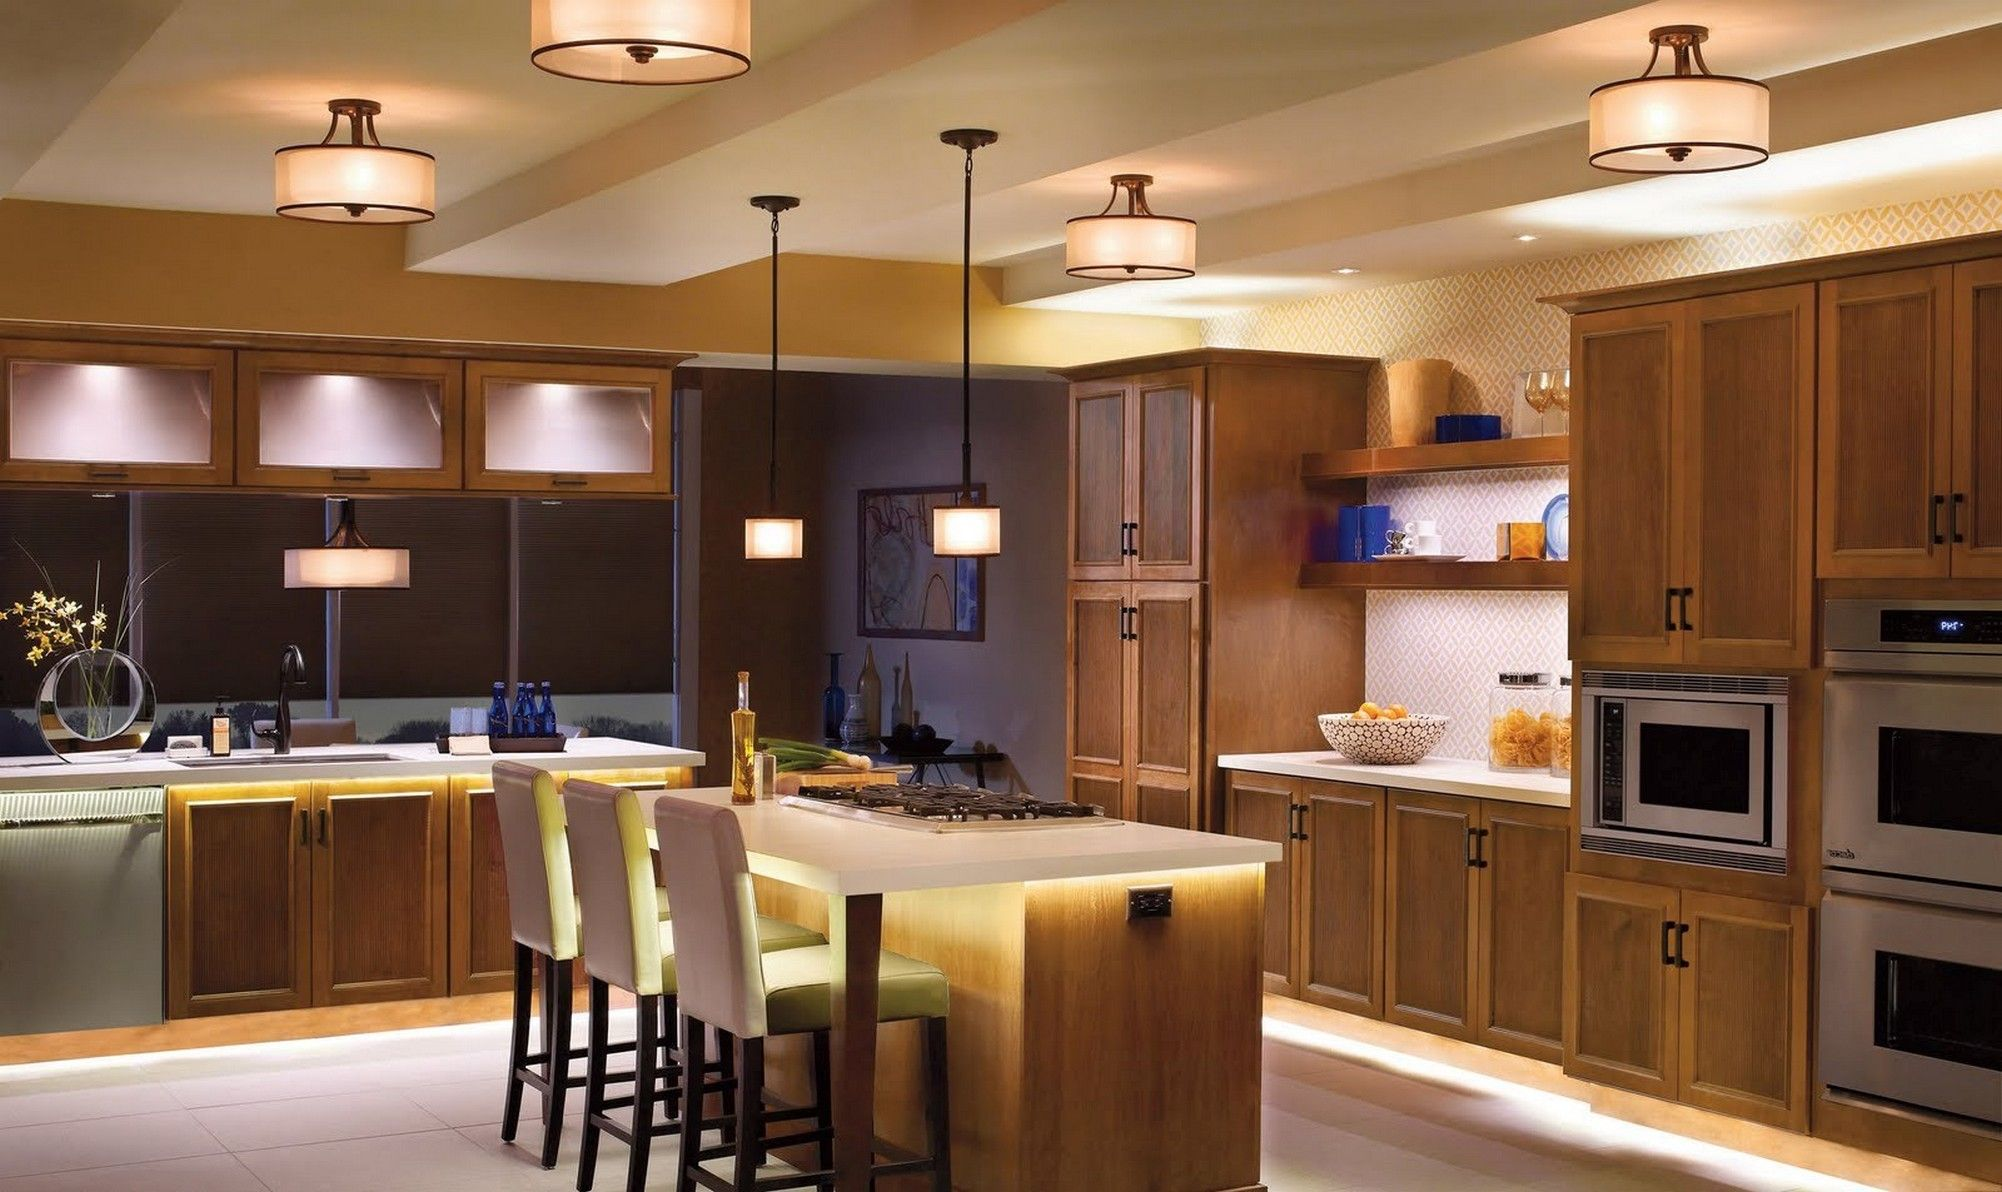 Wonderful Kitchen Ceiling Lights Above Large With Wooden Island And Cozy Stools On Wide Carpet